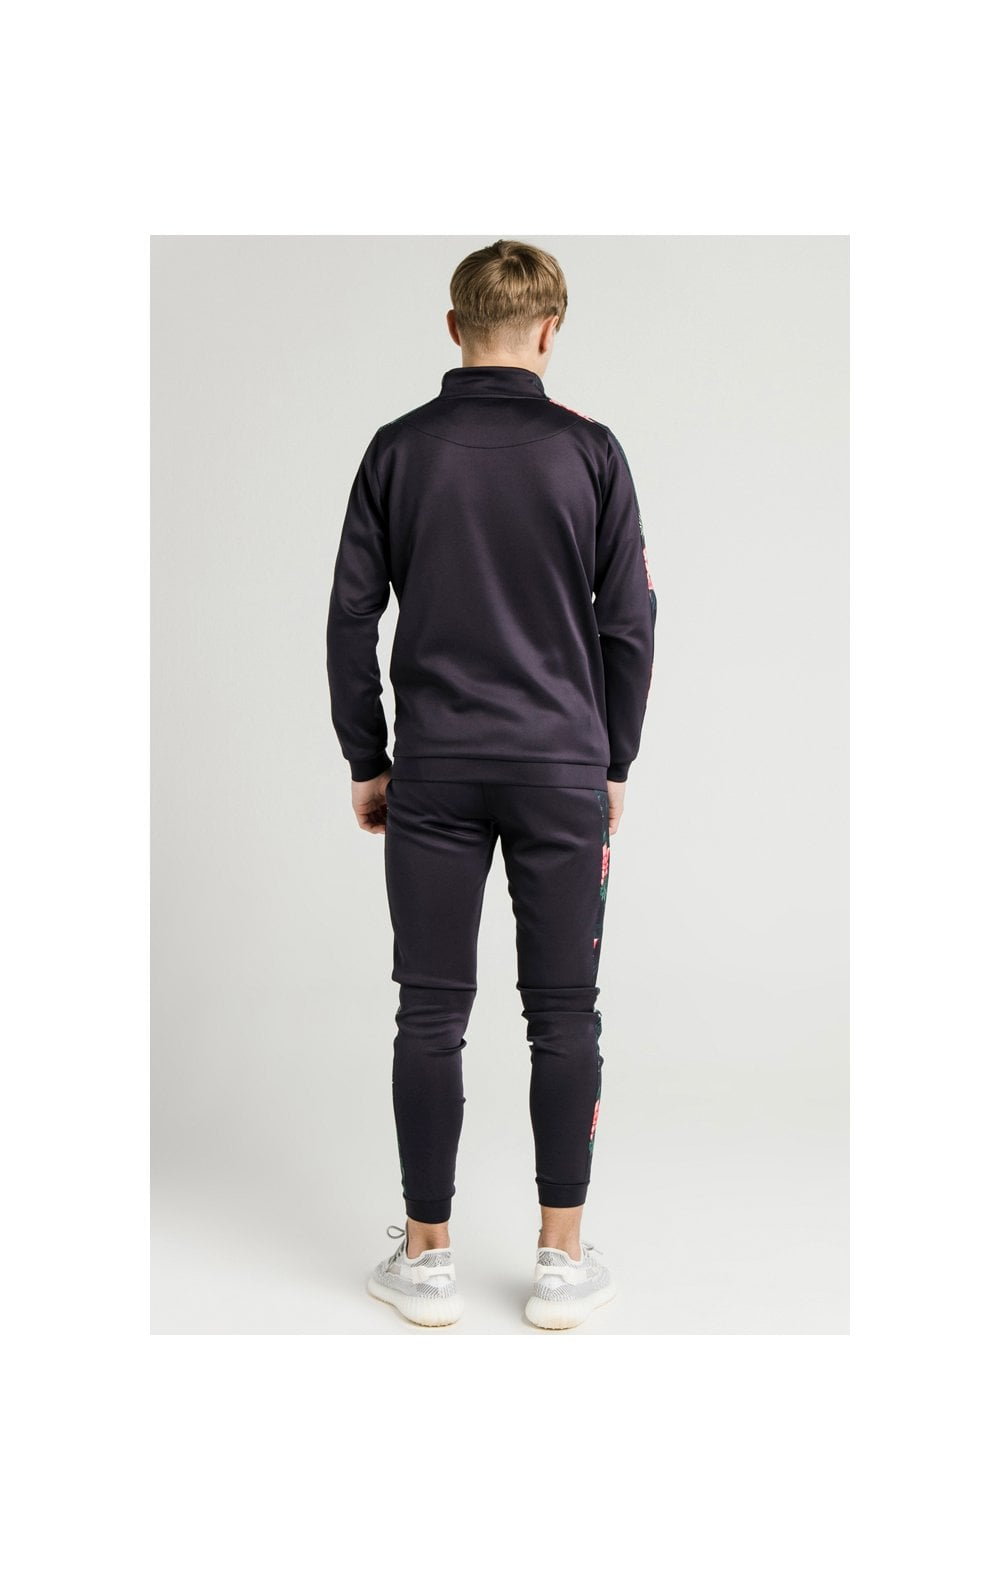 Illusive London Poly Funnel Neck Hoodie - Navy & Floral (5)